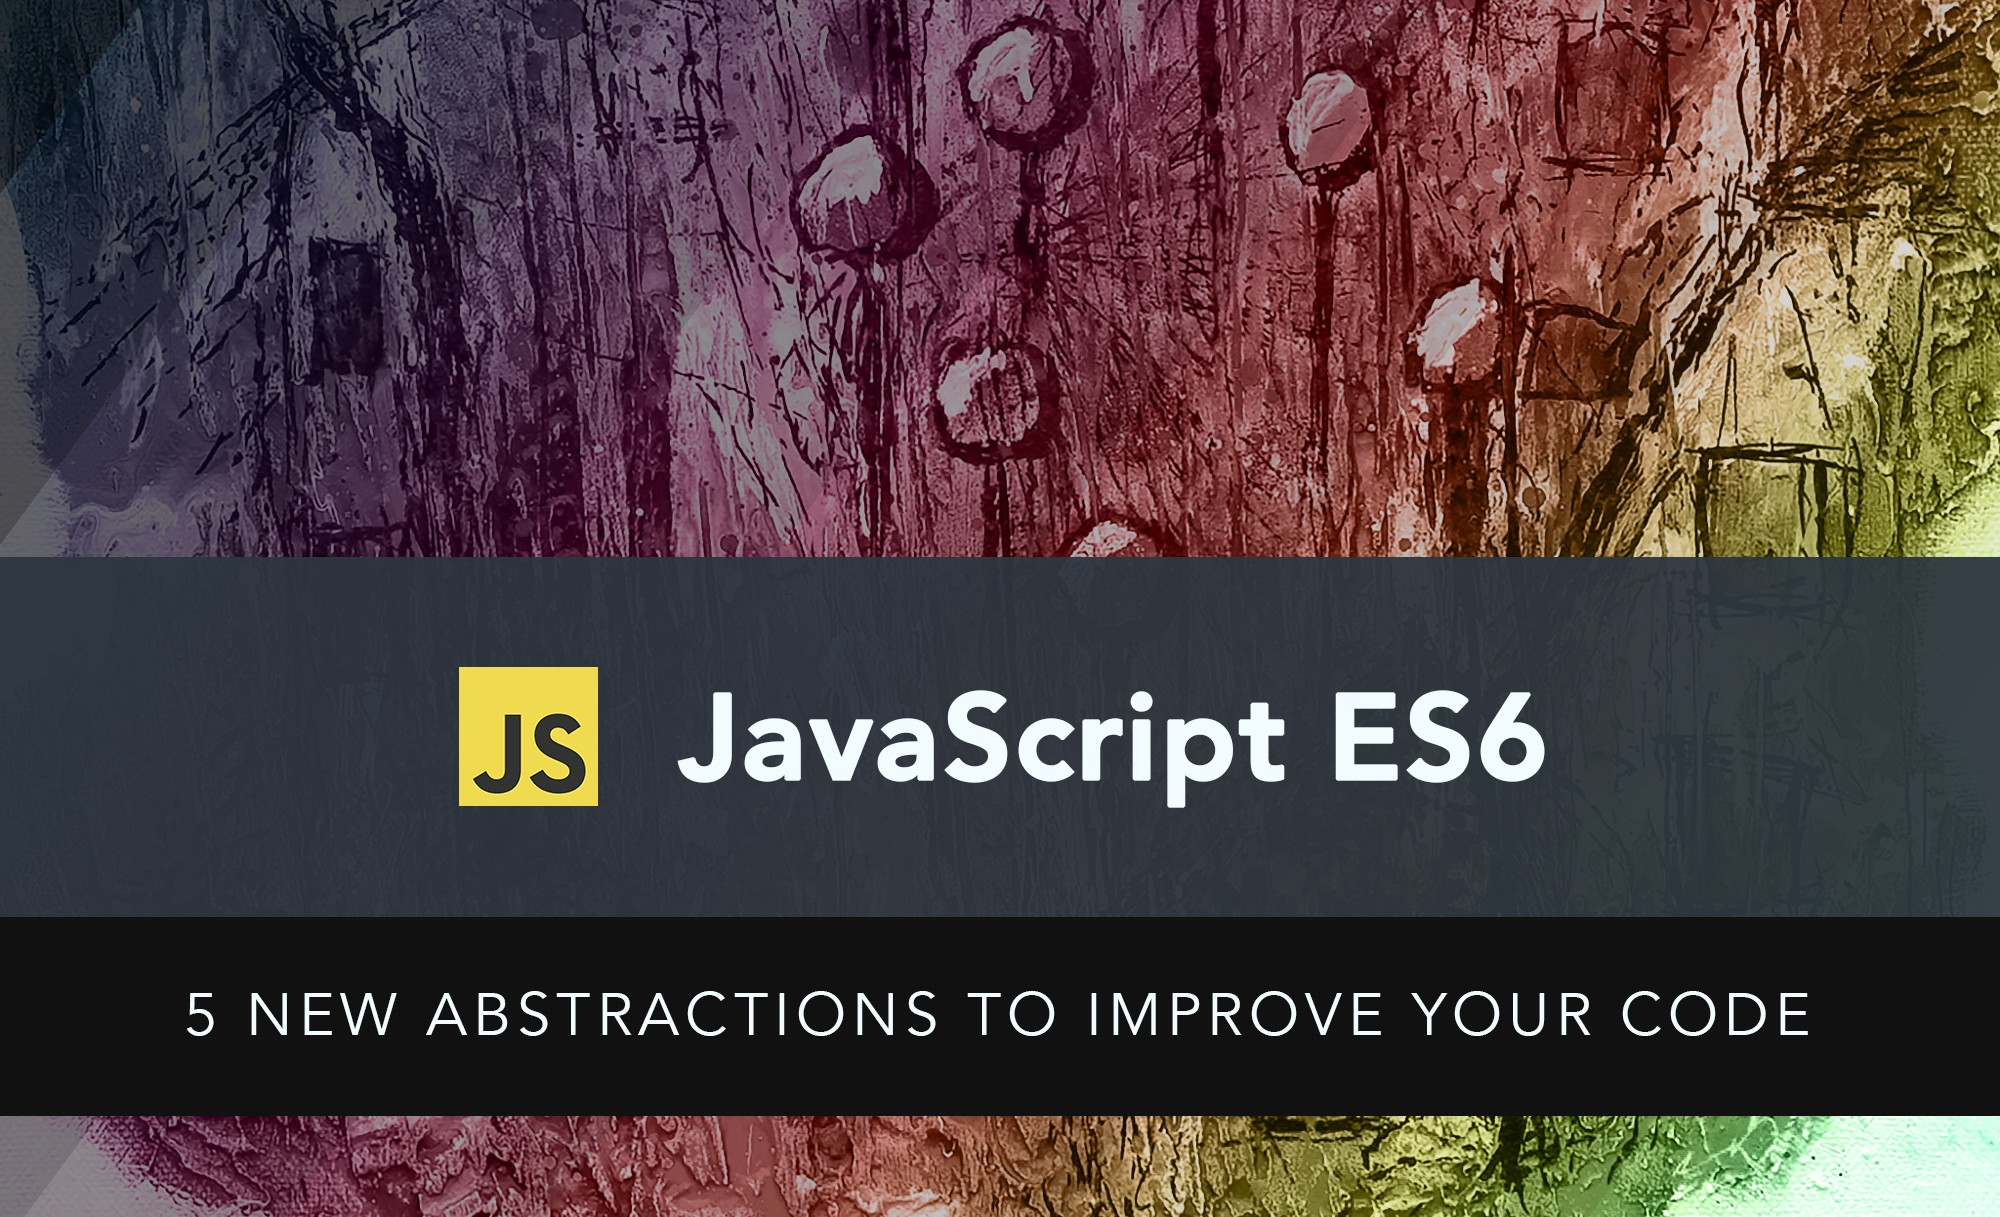 JavaScript ES6: Even more new abstractions to improve your code